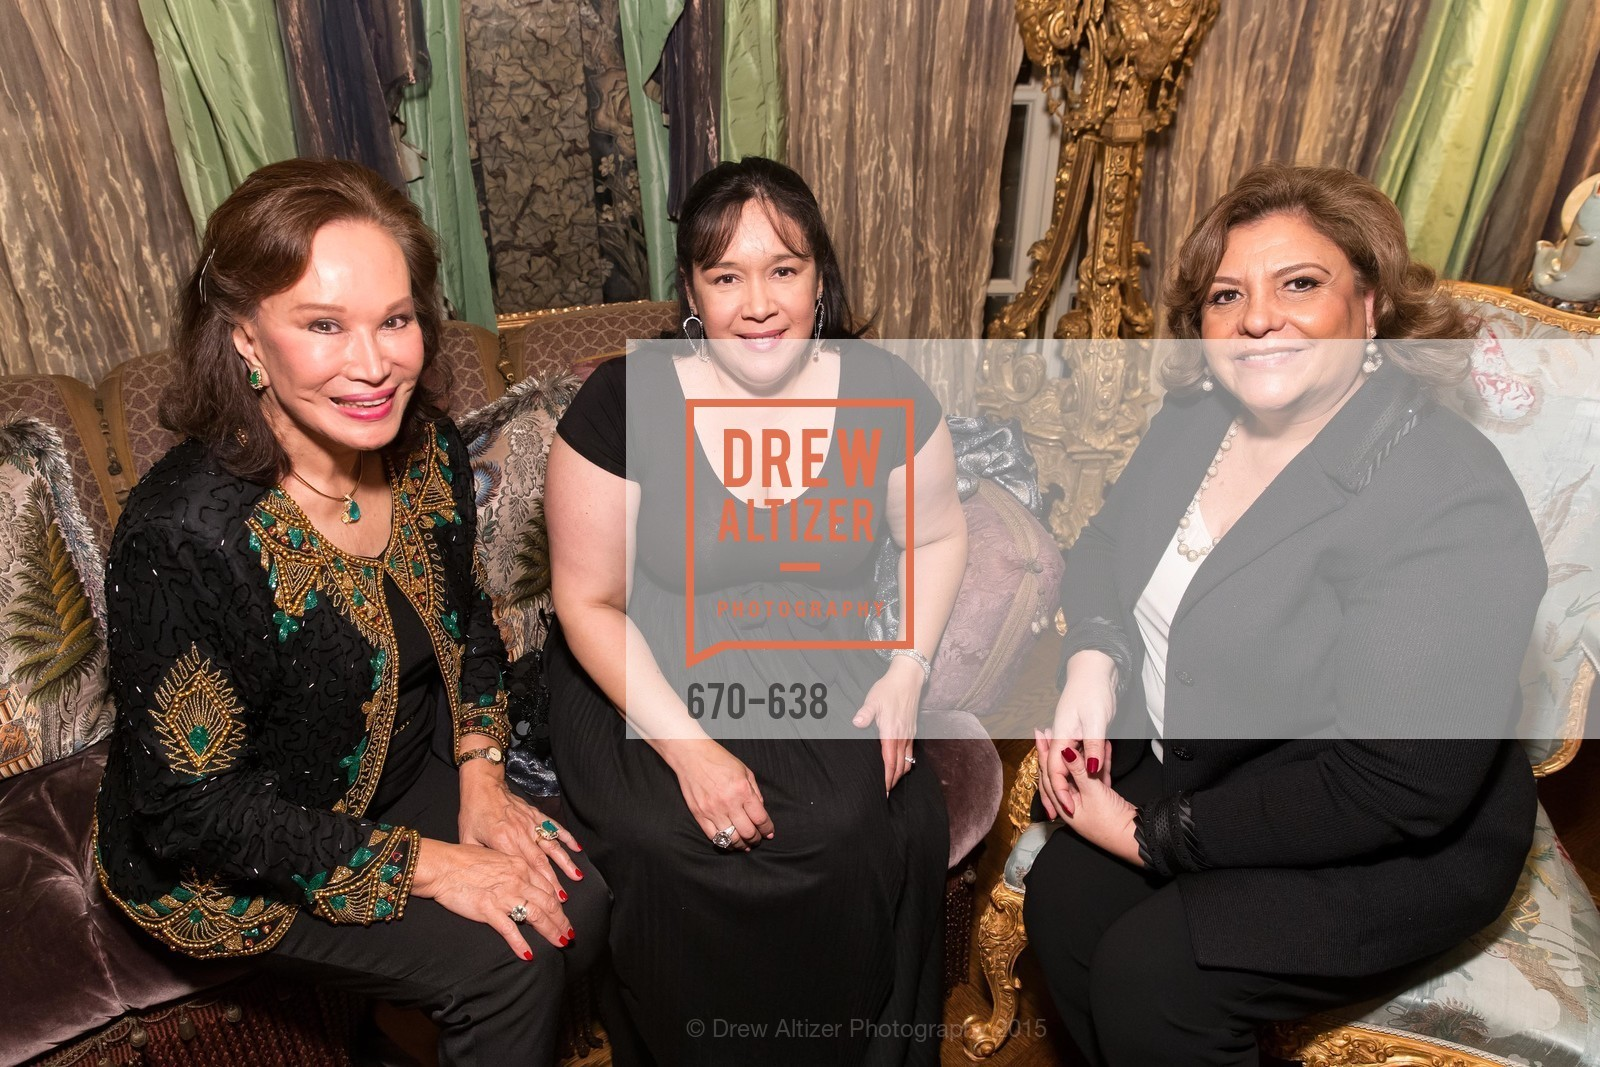 Martha Hertelendy, Tiesay Lugo, Candy Chavez, San Francisco Mayor's Office of Protocol Christmas Party, Private Residence, December 9th, 2015,Drew Altizer, Drew Altizer Photography, full-service agency, private events, San Francisco photographer, photographer california